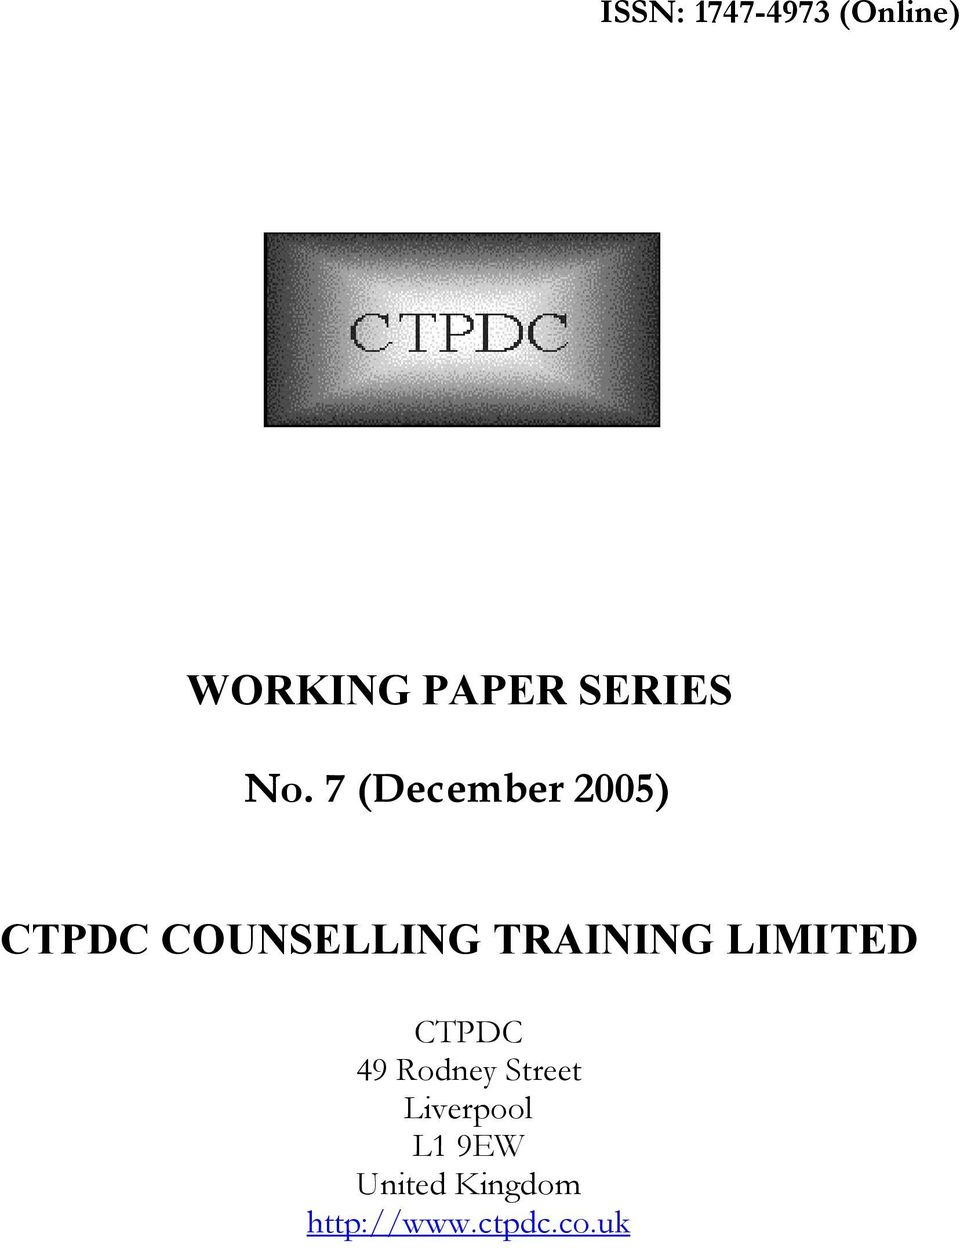 7 (December 2005) CTPDC COUNSELLING TRAINING